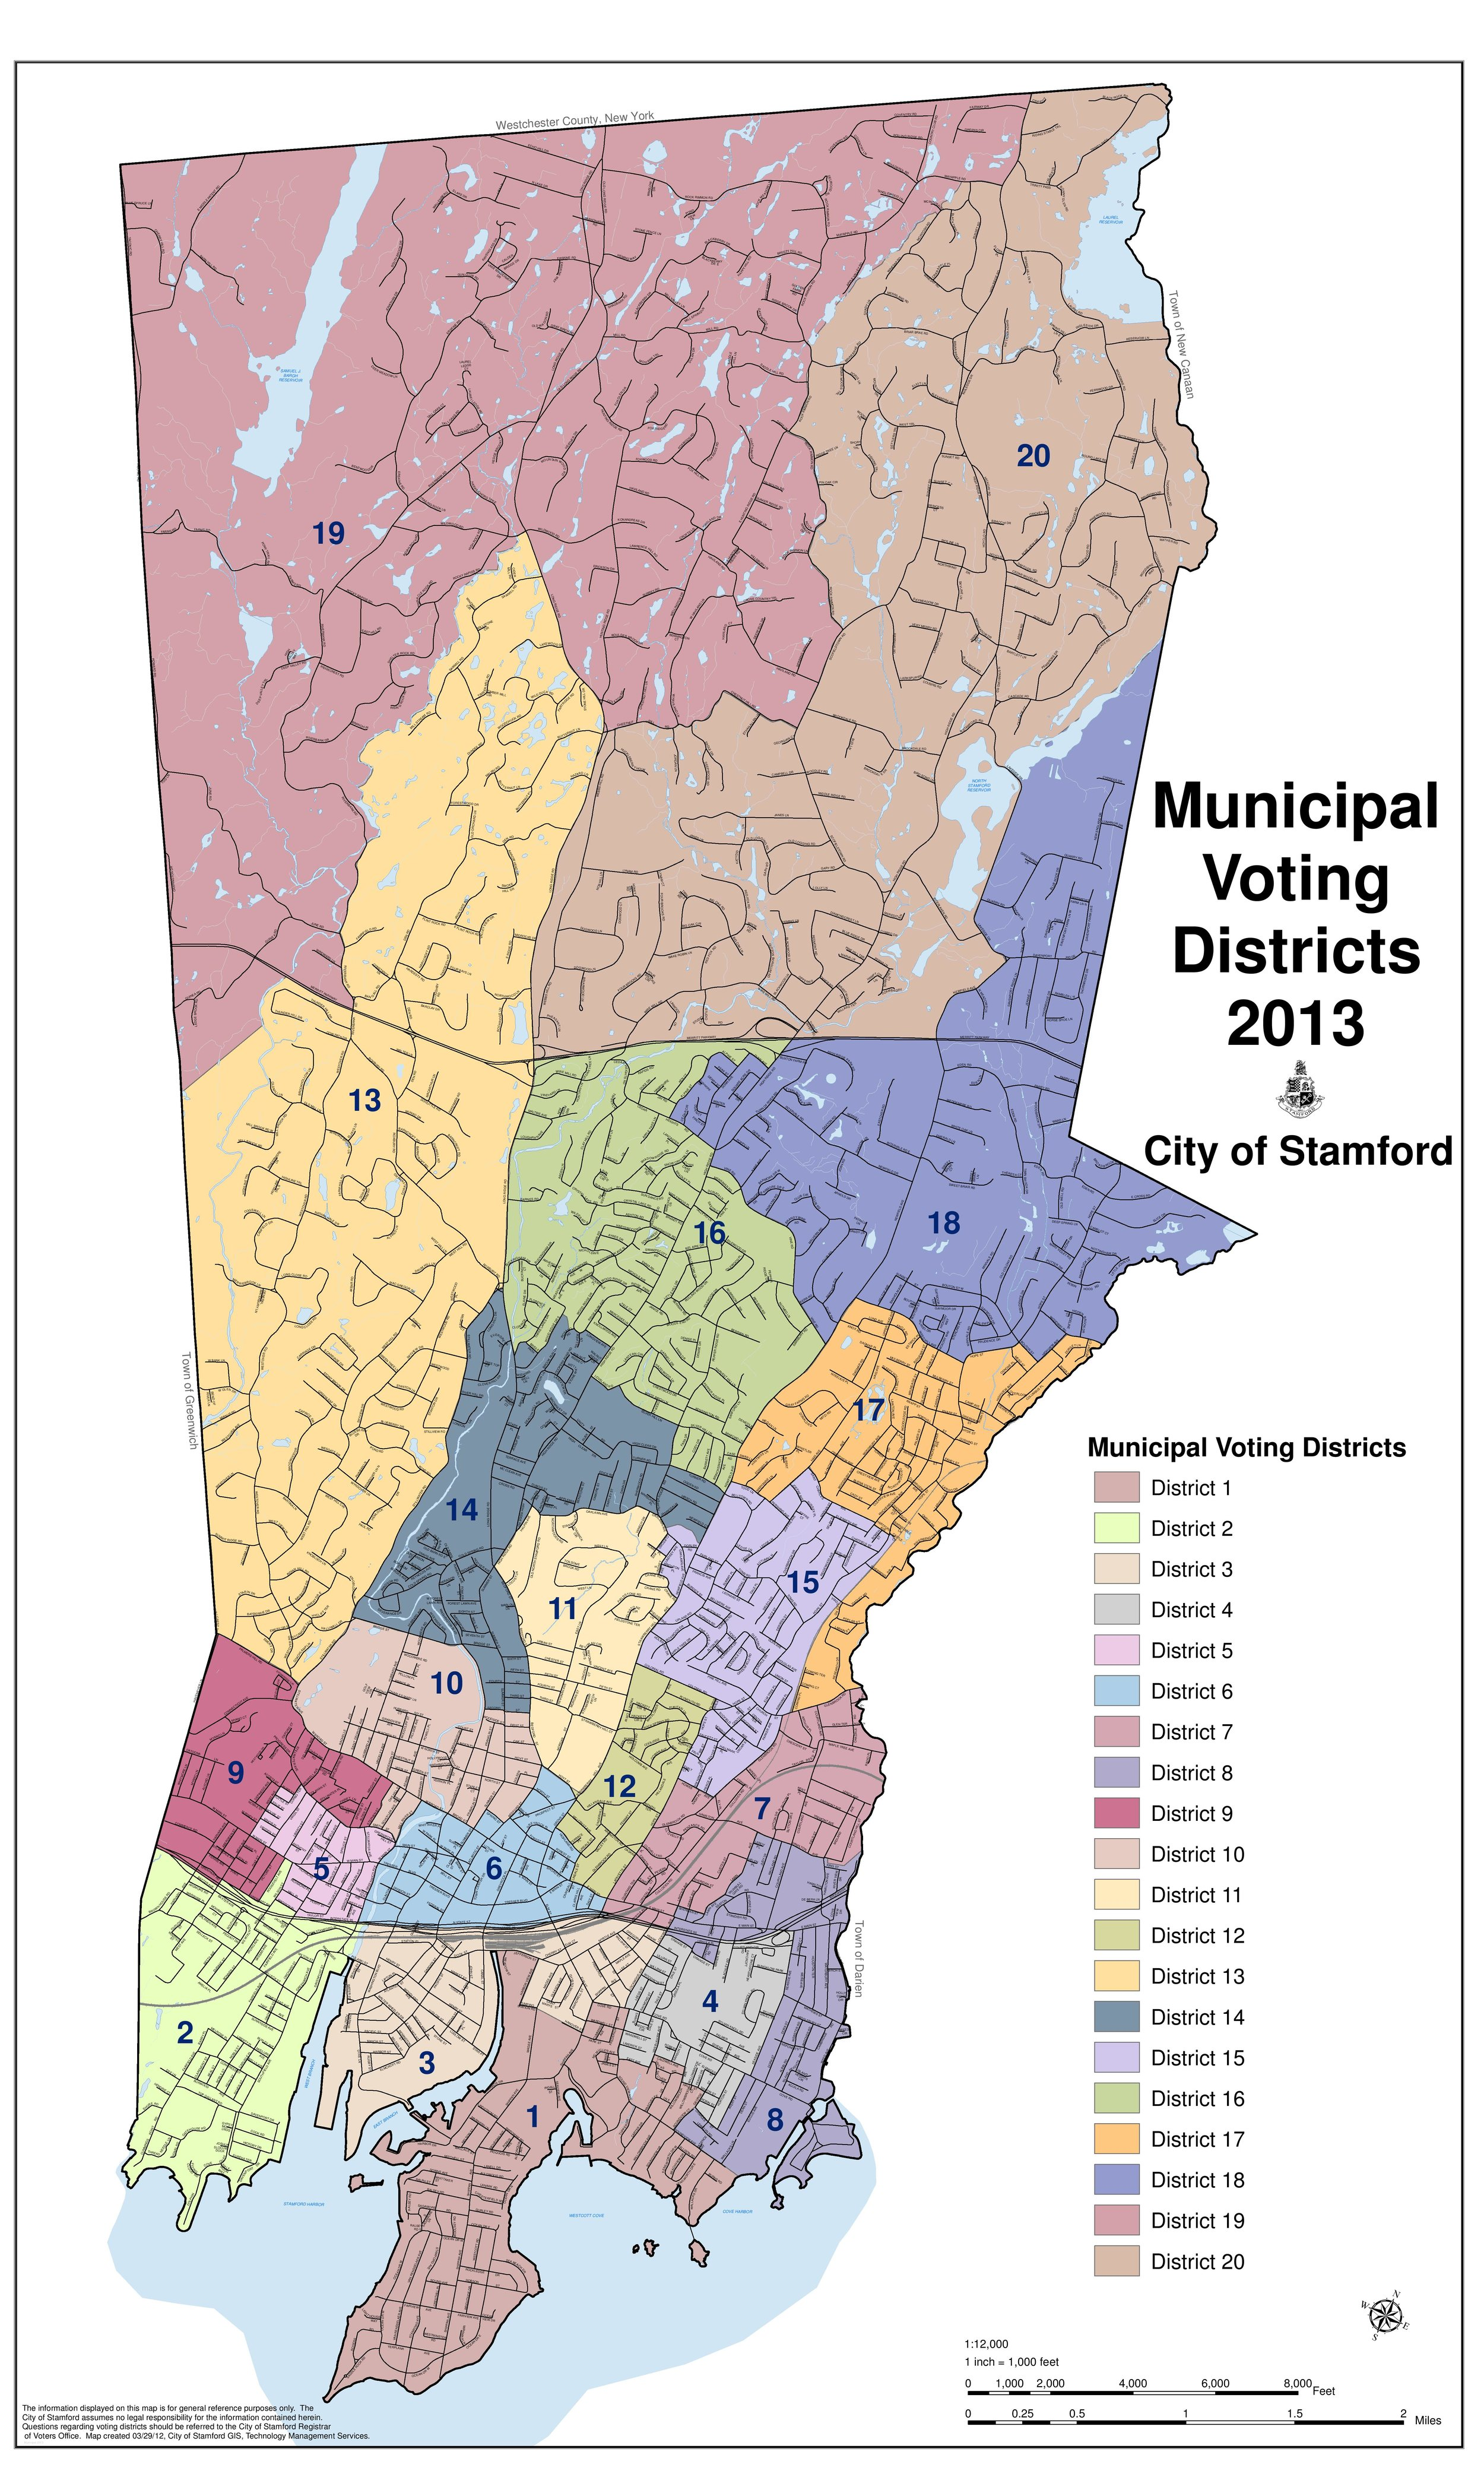 voting_districts_muni2013_smaller-page-001.jpg